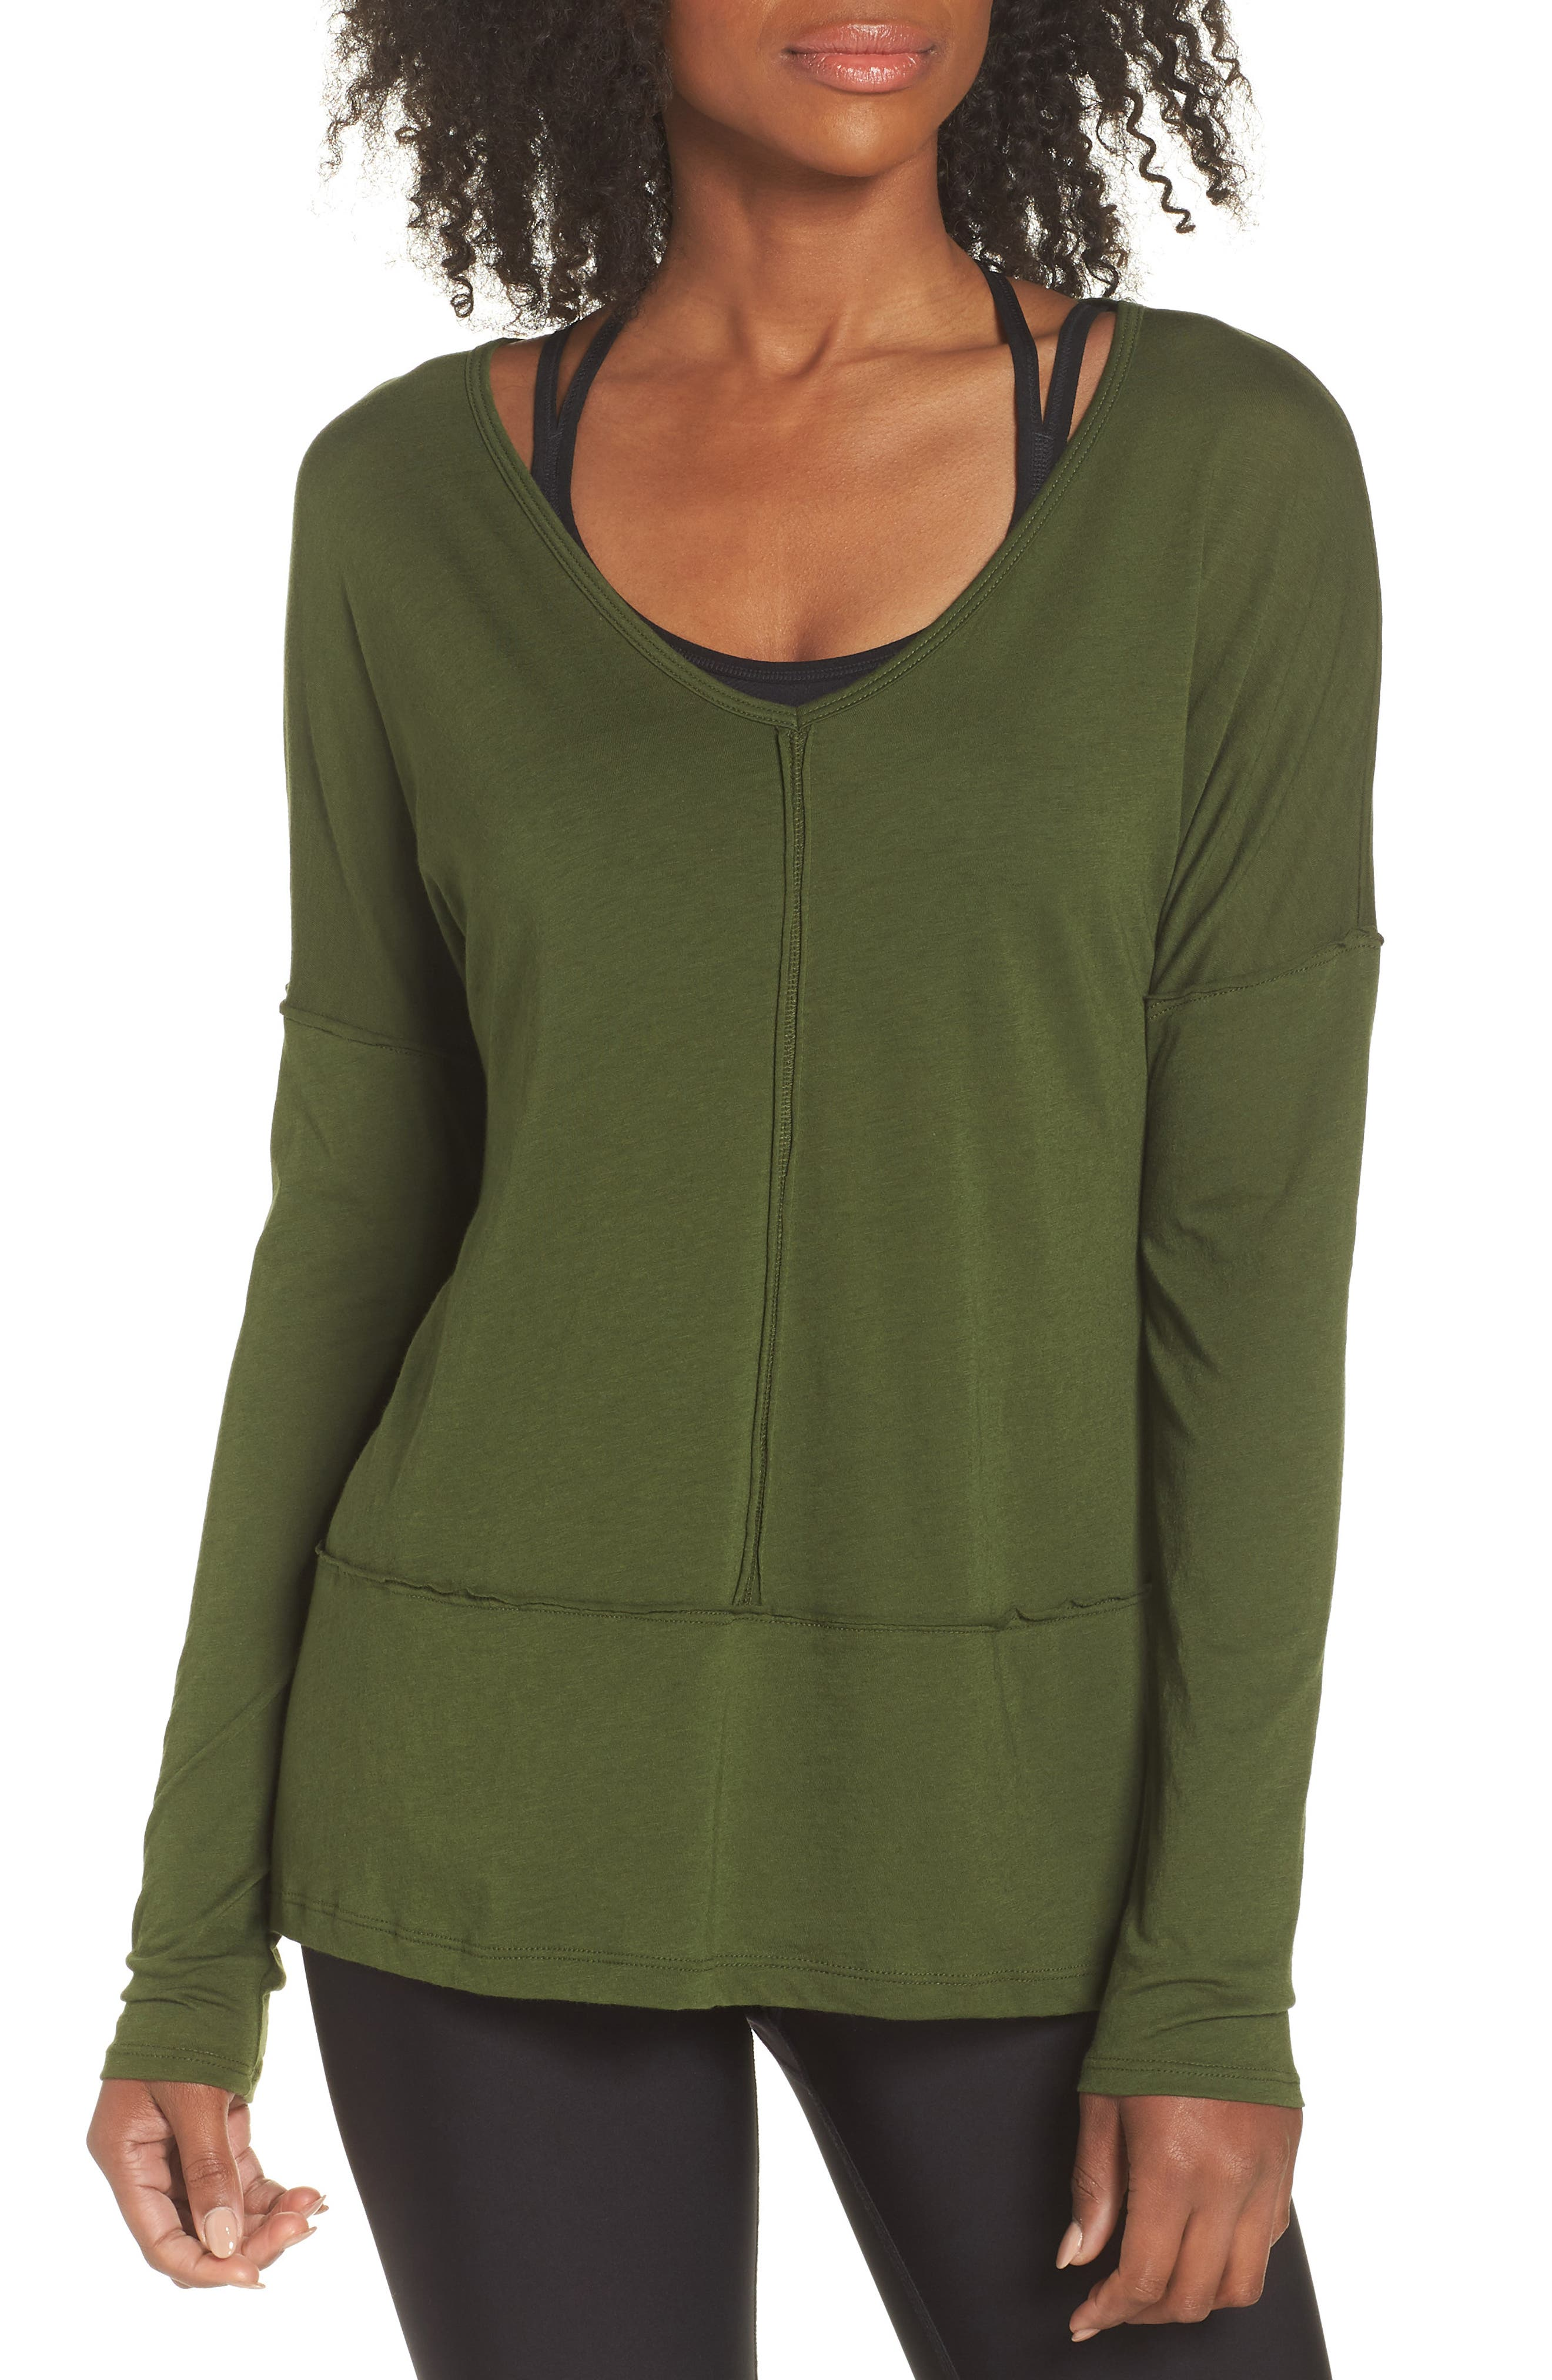 Super Slick Pullover,                         Main,                         color, Jungle Palm